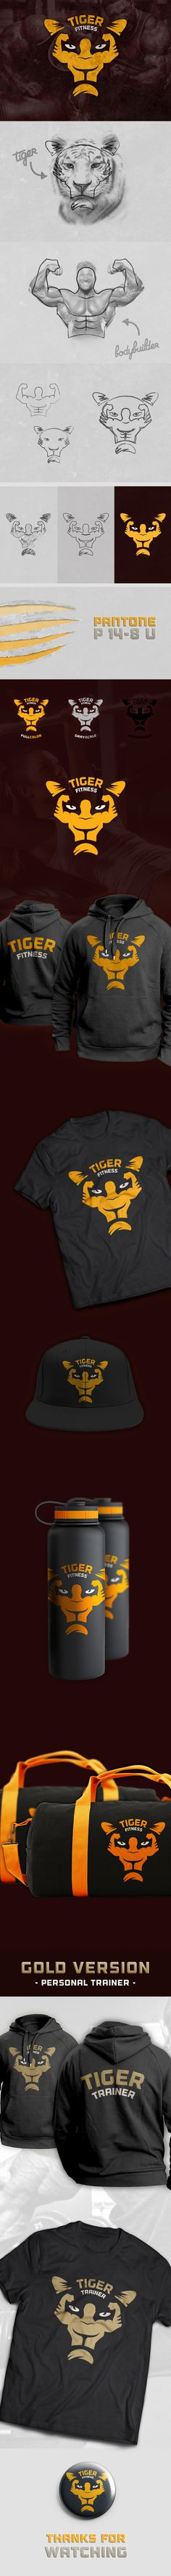 Tiger Fitness Center #logo design #inspiration #brand #identity